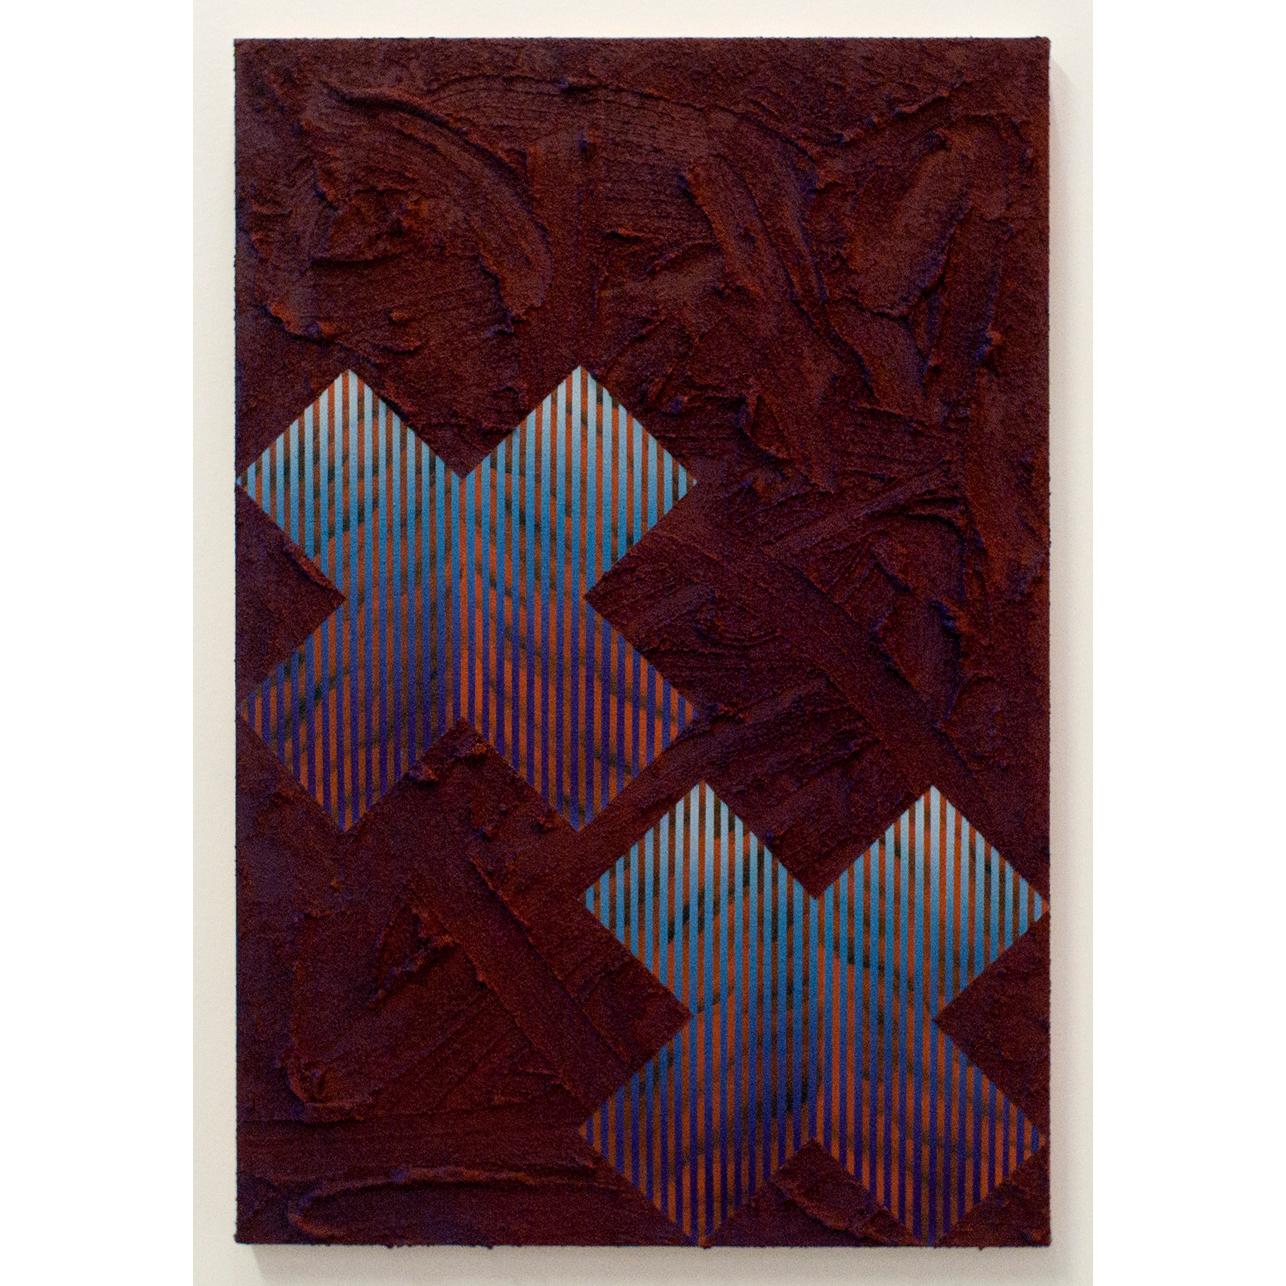 Untitled , 2018, acrylic and pumice gel on canvas, 21 x 14 inches.